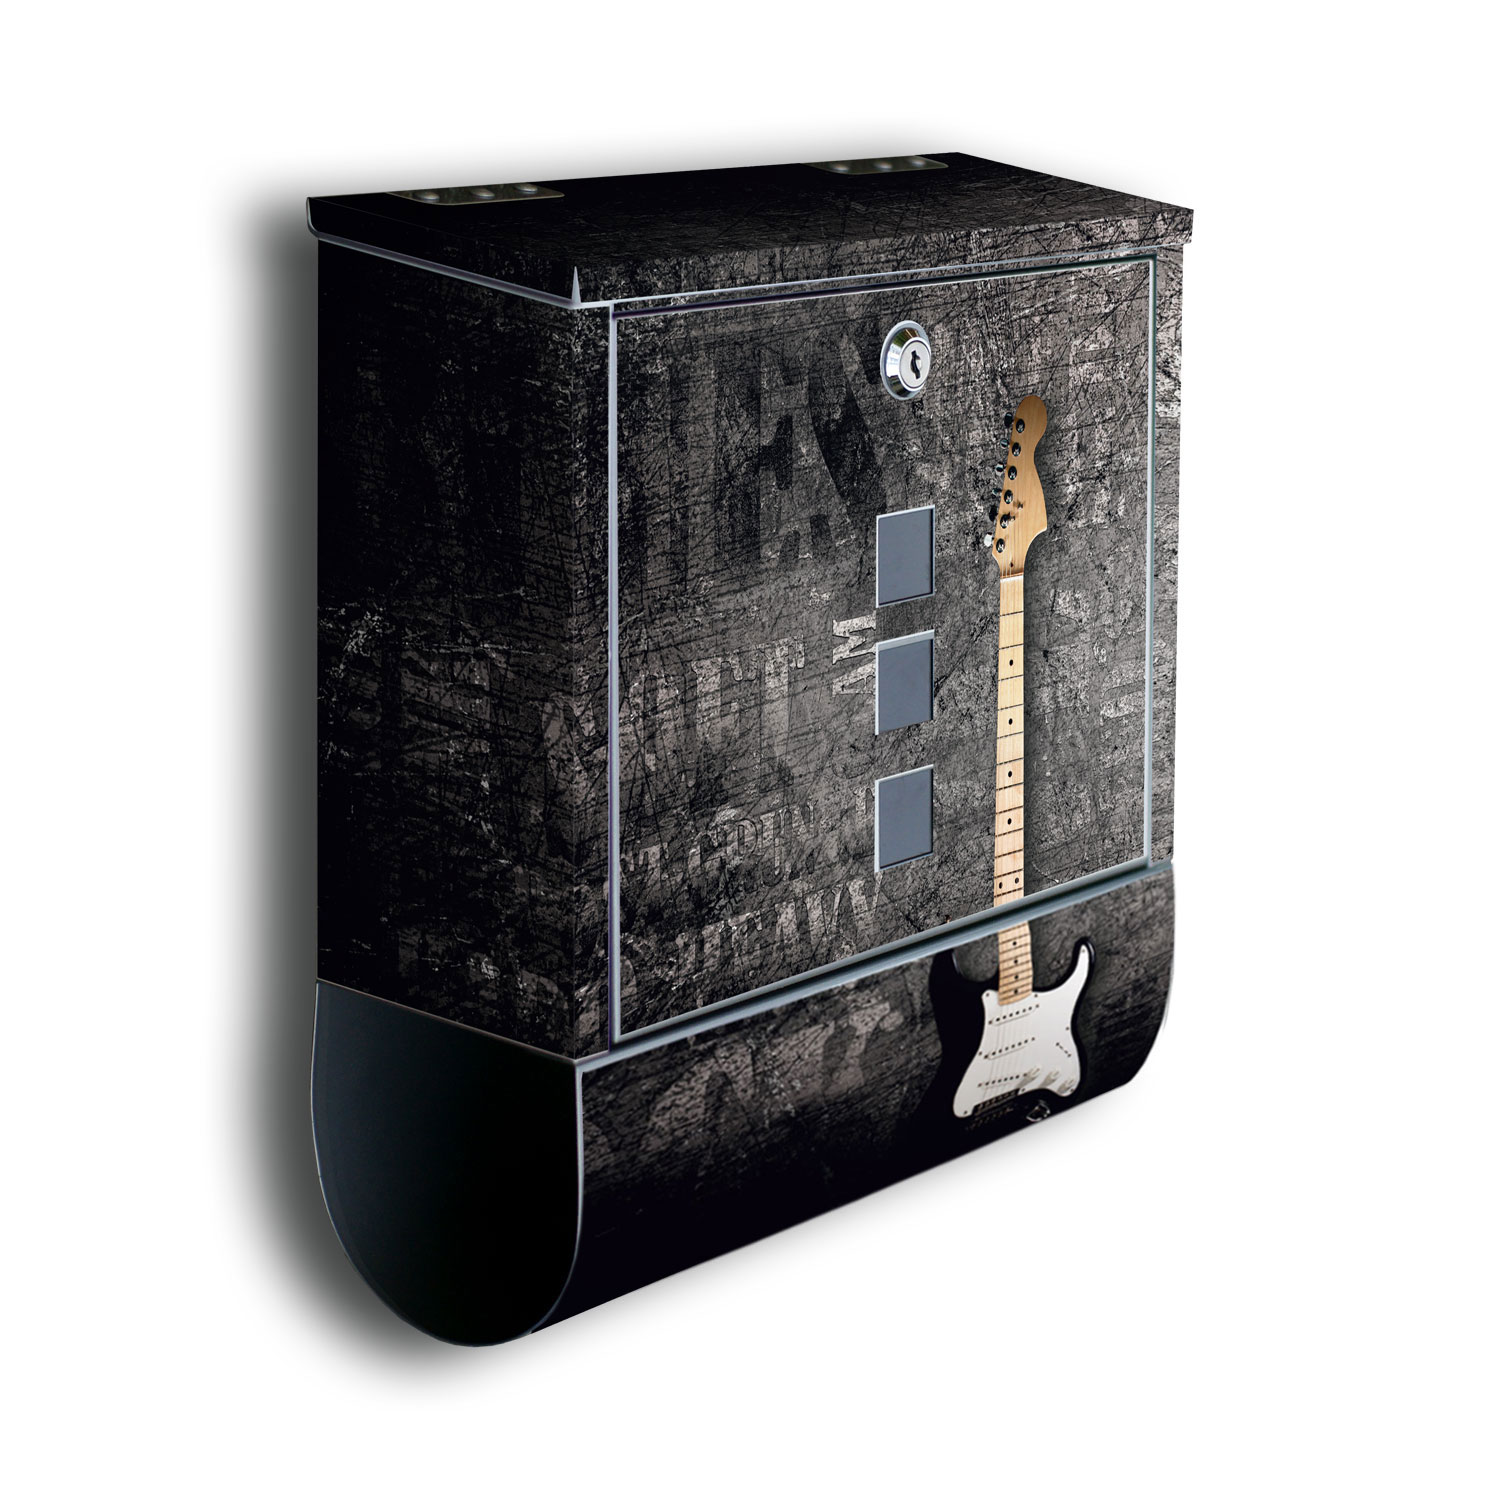 wandmotiv24 briefkasten e gitarre mit zeitungsrolle mit motiv briefk sten fototapeten. Black Bedroom Furniture Sets. Home Design Ideas